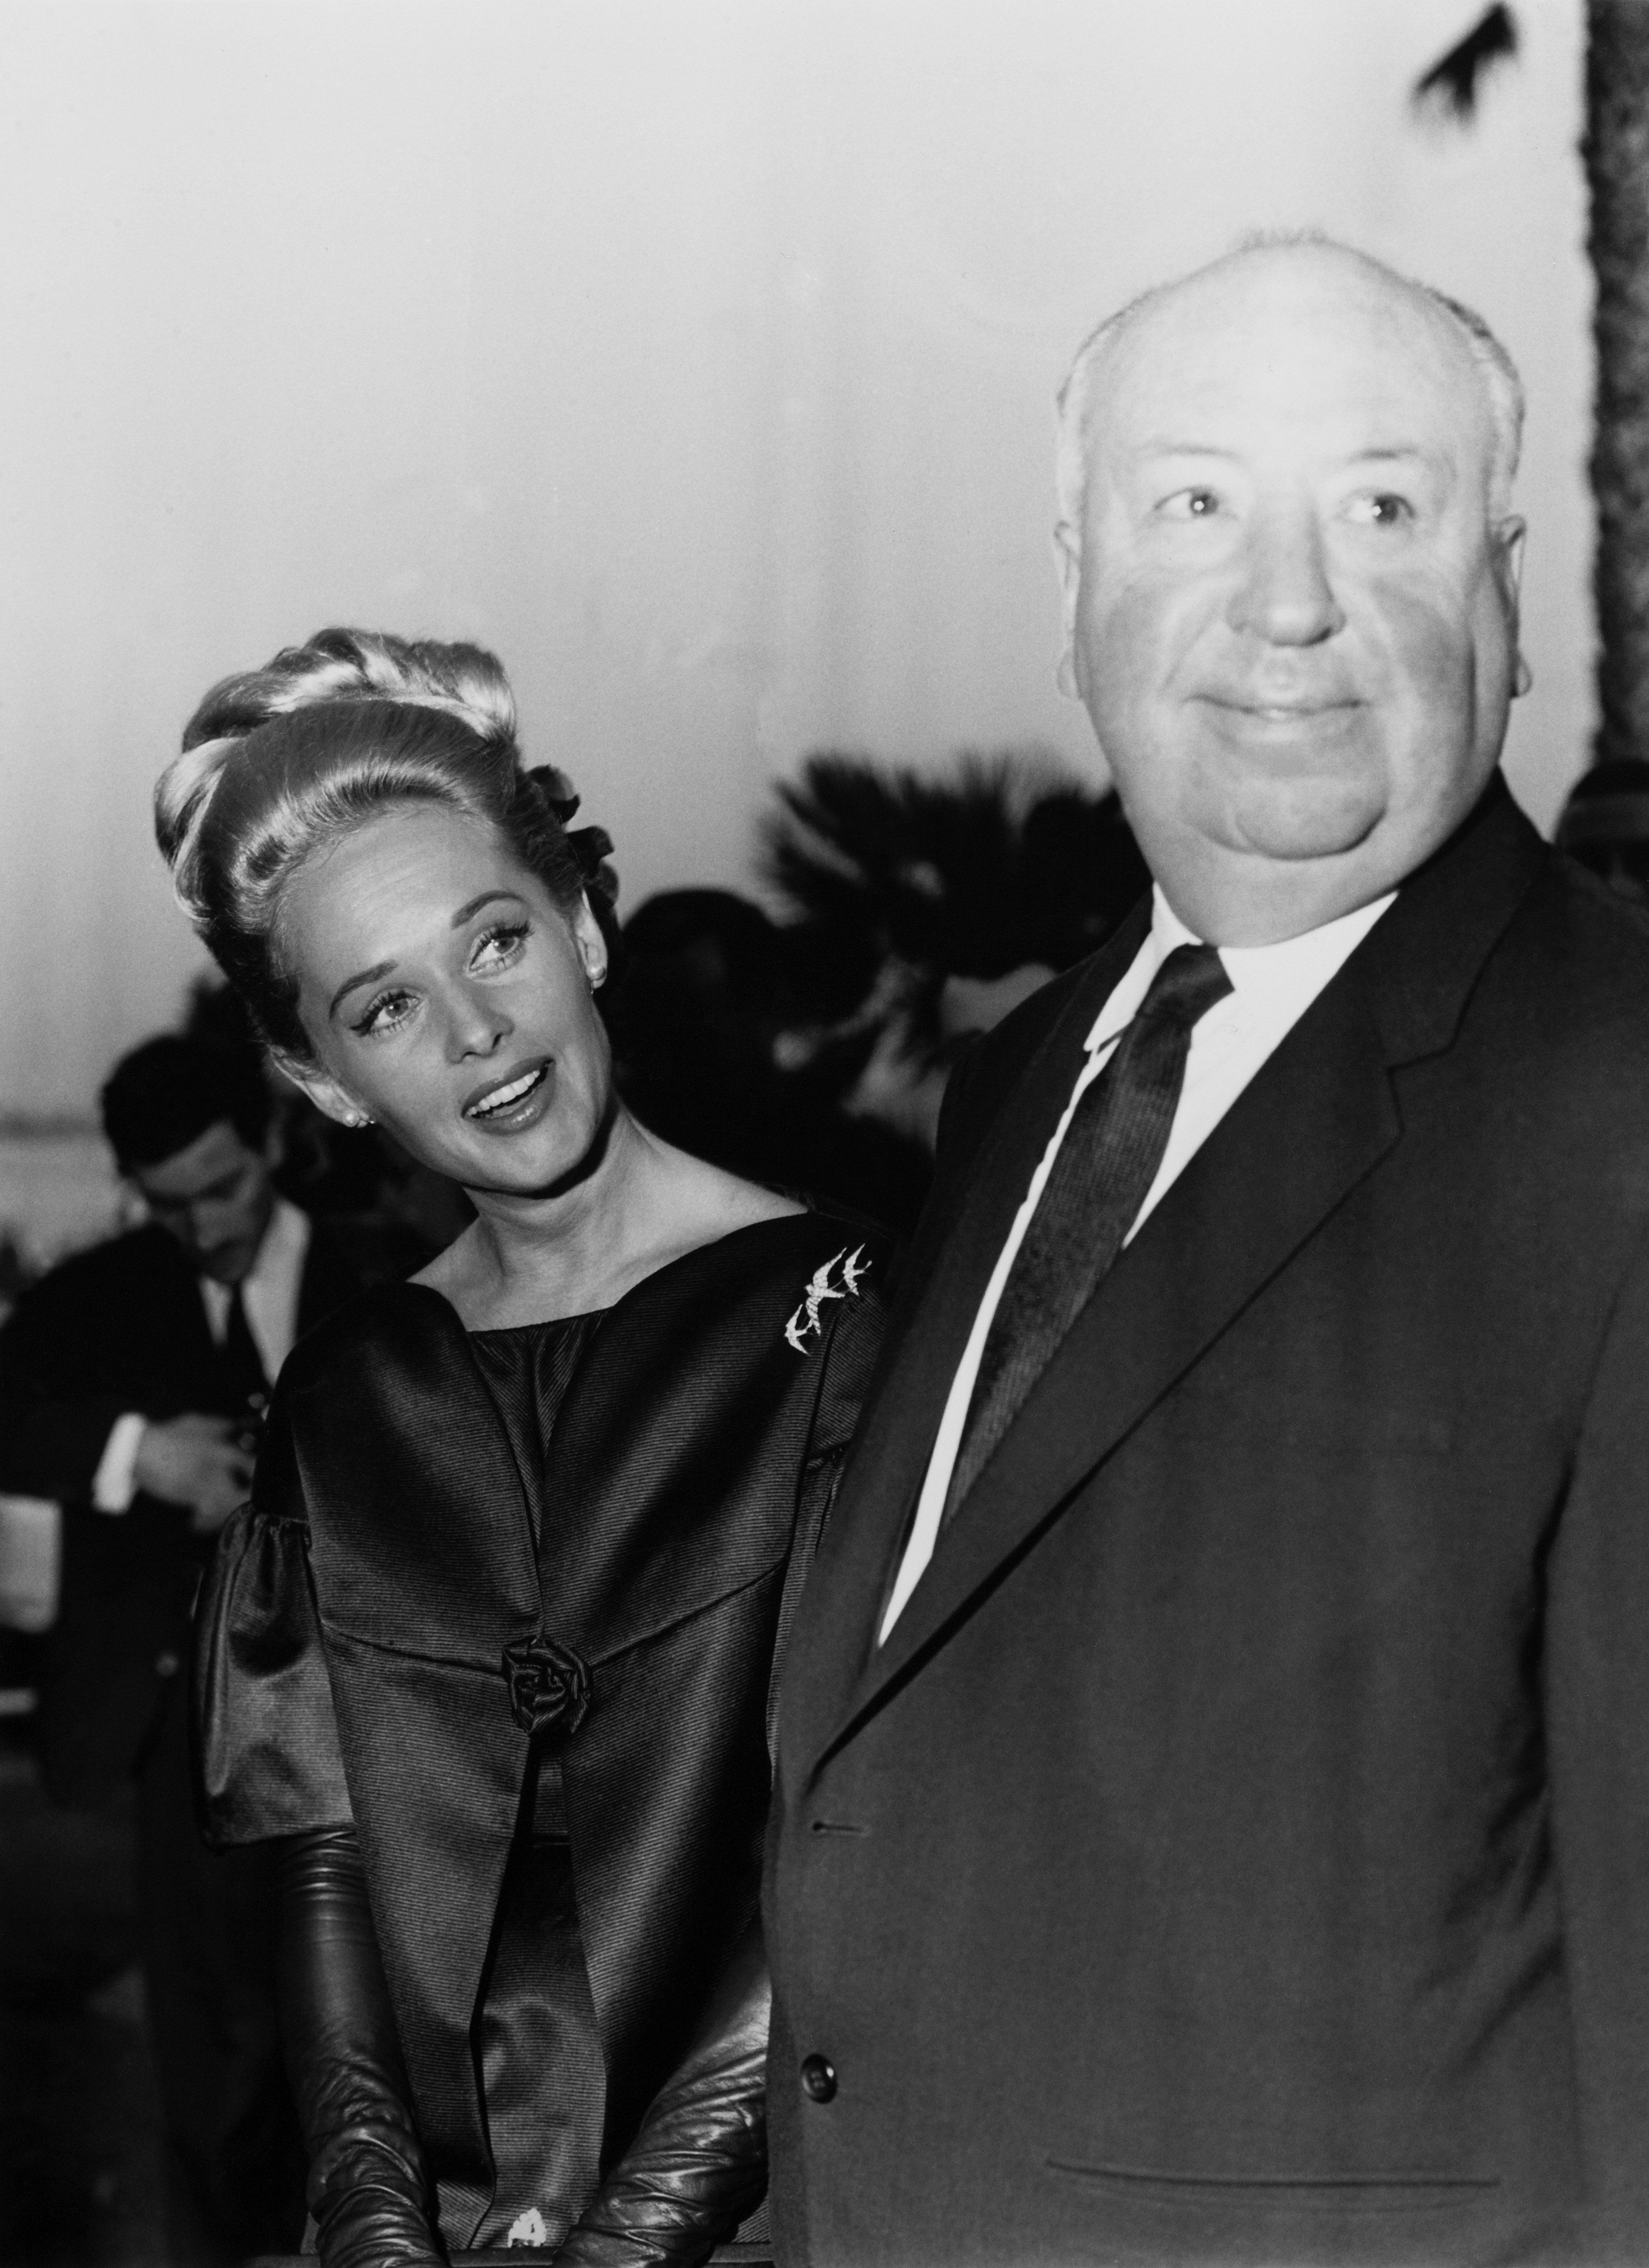 Tippi Hedren Claims Alfred Hitchcock Sexually Assaulted Her While Filming 'The